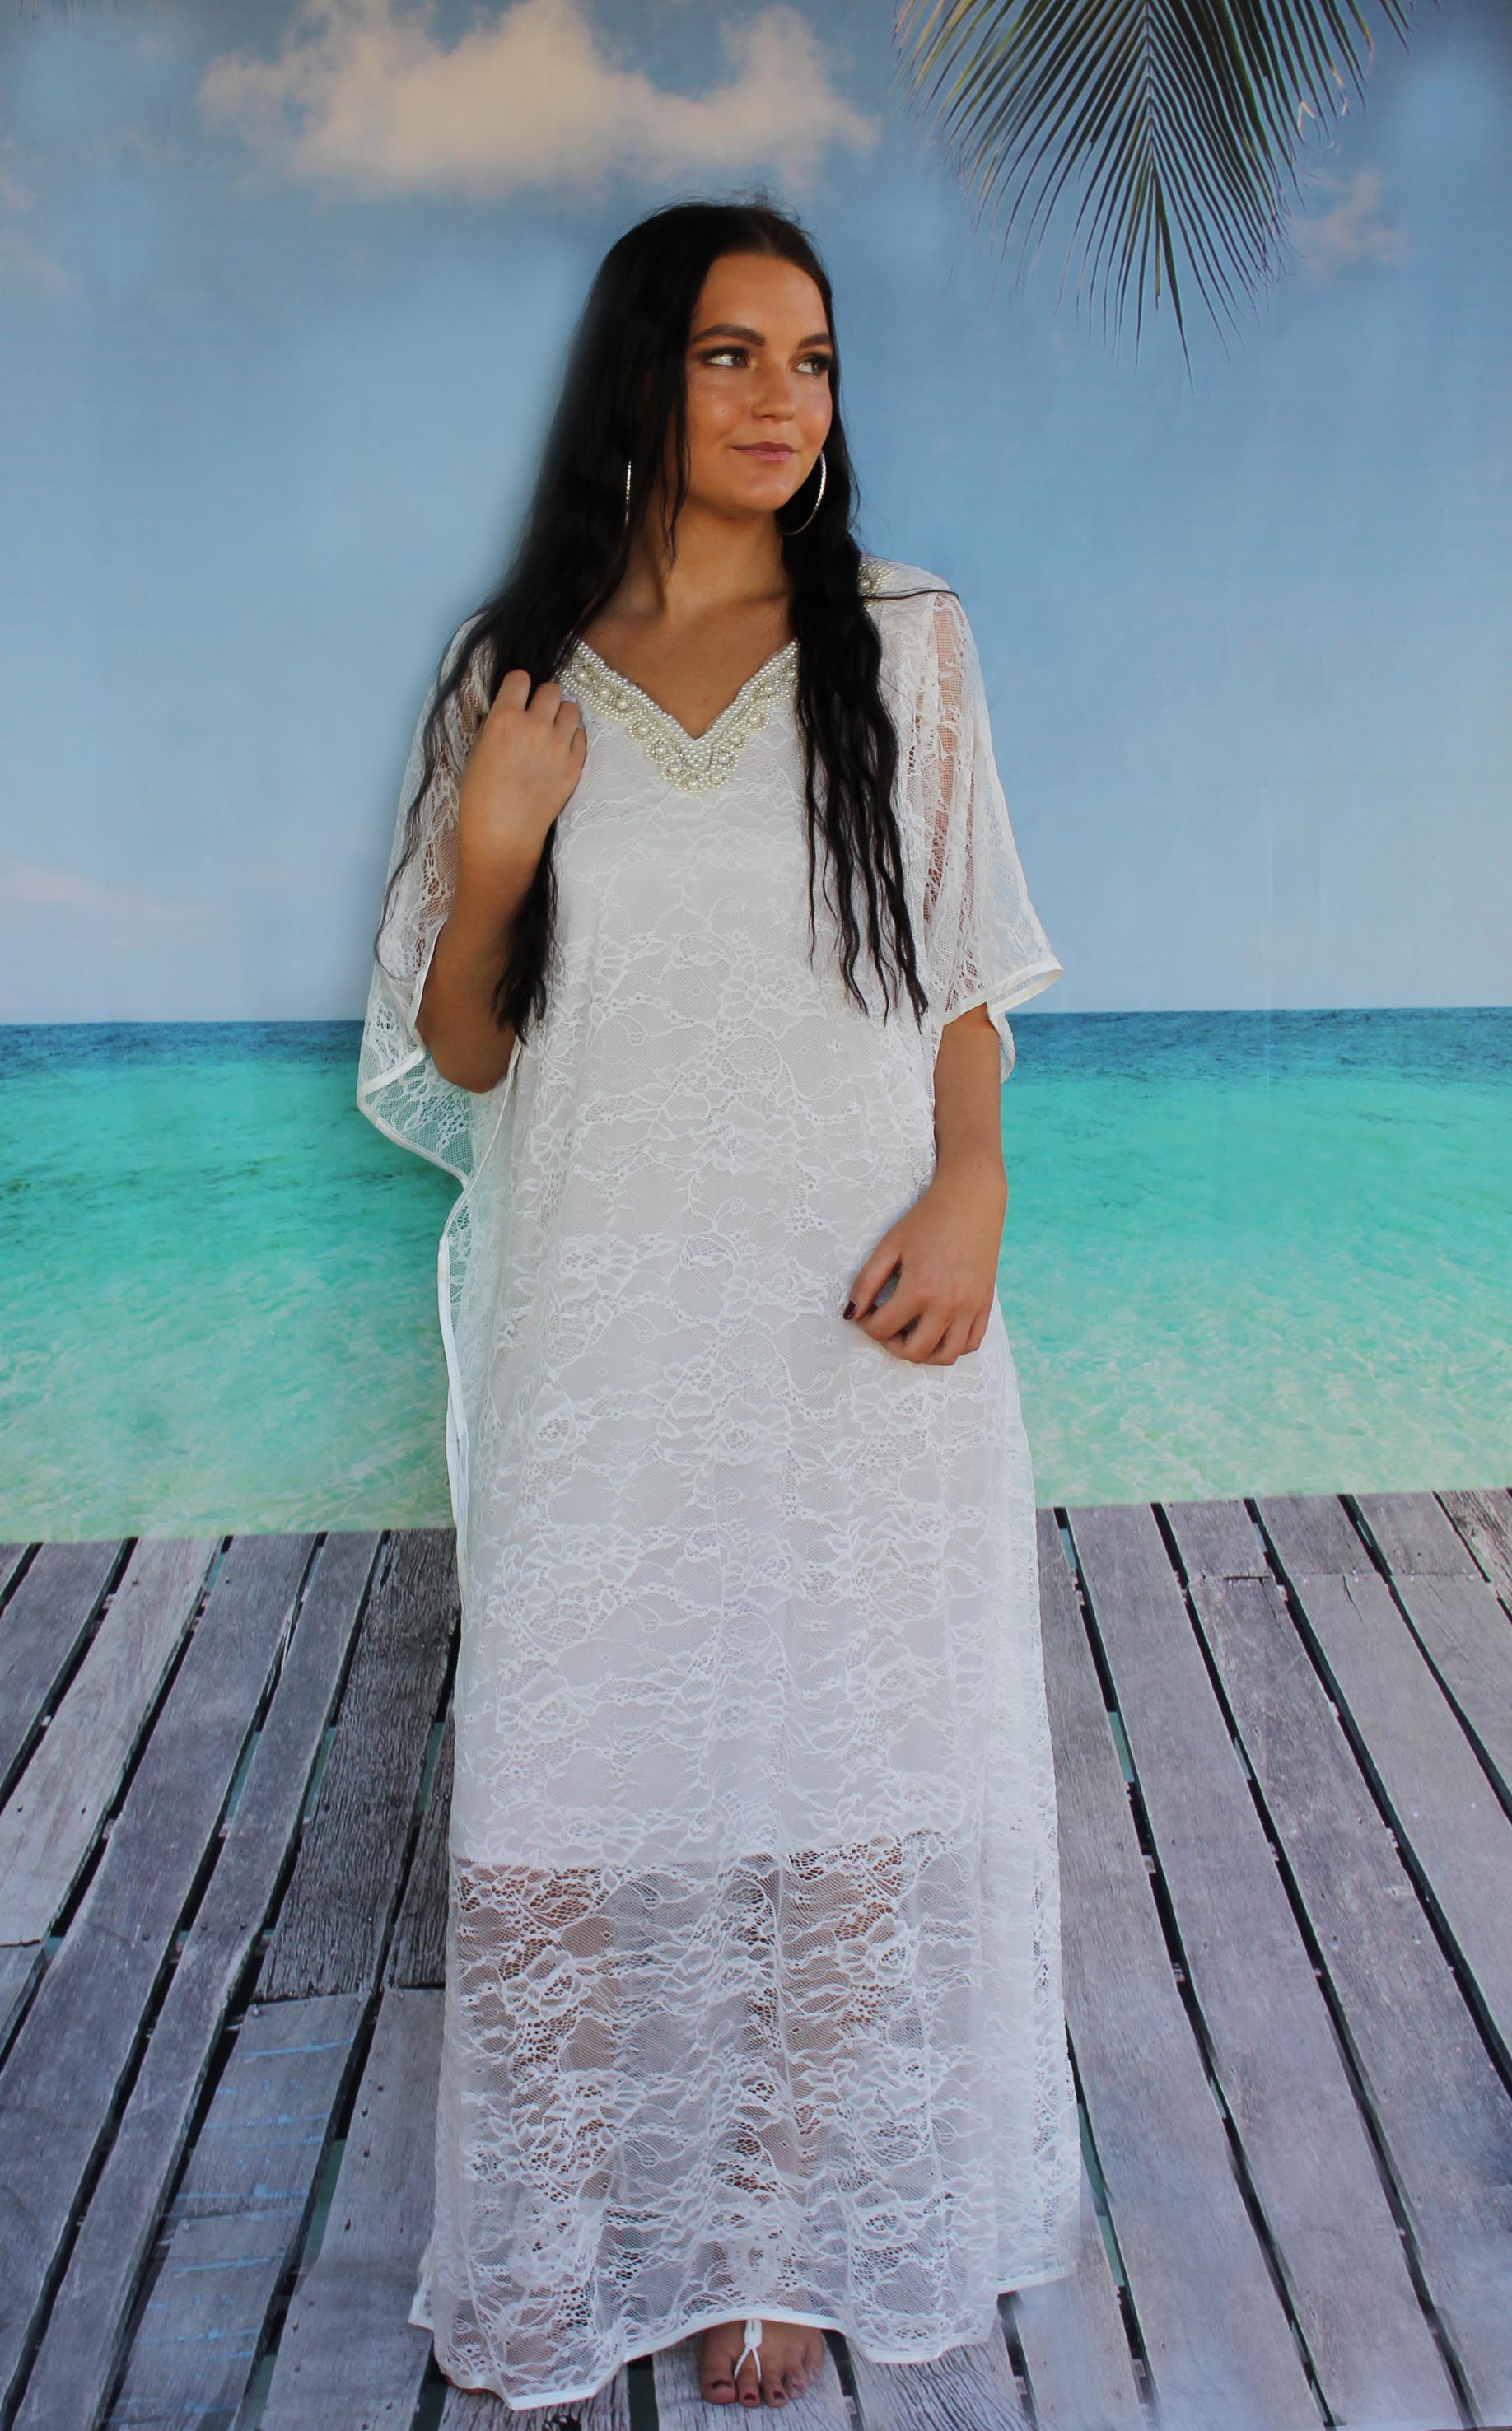 Esther Kaftan White